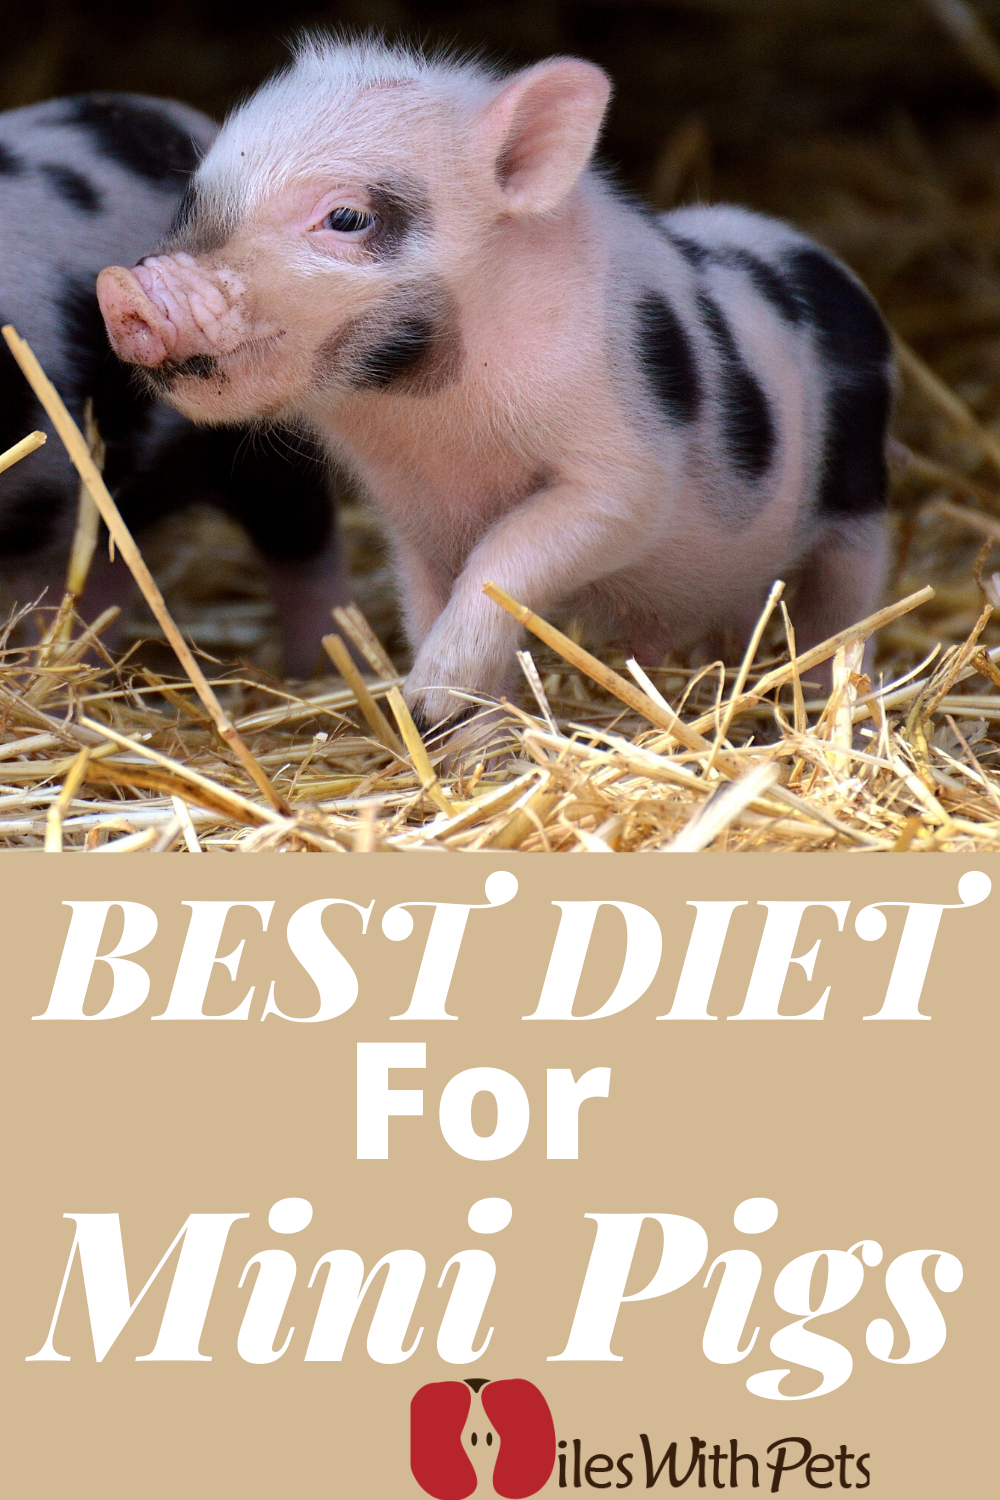 Proper Diet For Mini Pigs The Proper Care And Feeding Of Your Mini Pig Is Pot Belly Pigs Mini Potbelly Pigs Mini Pig Care